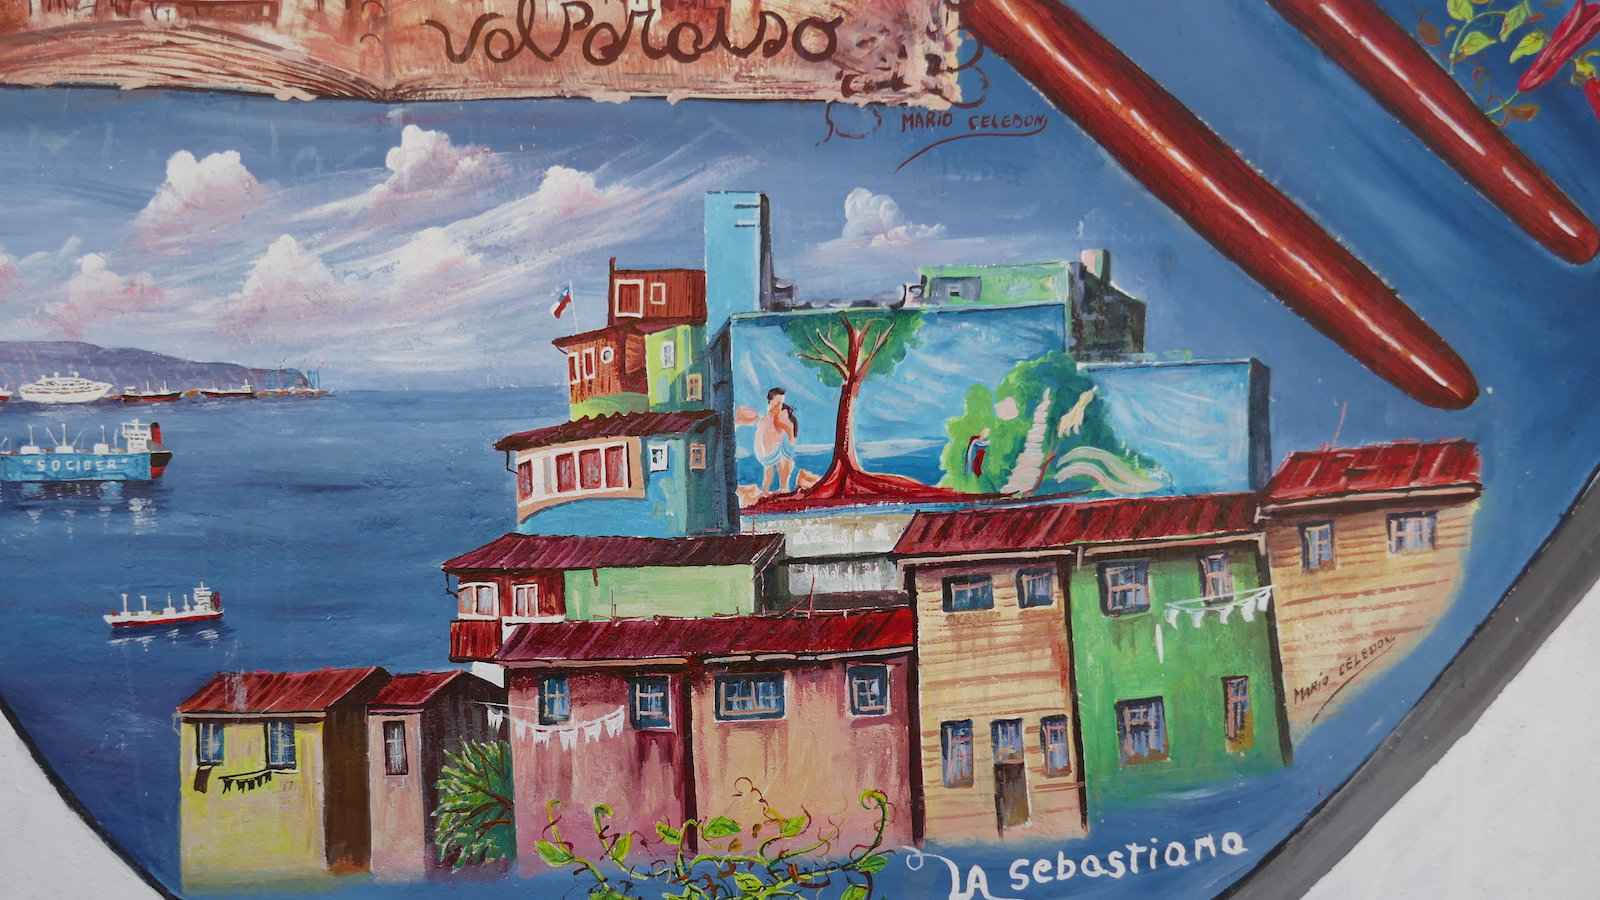 Chile produces excellent poets, including Nobel prize winners Pablo Neruda and Gabriela Mistral